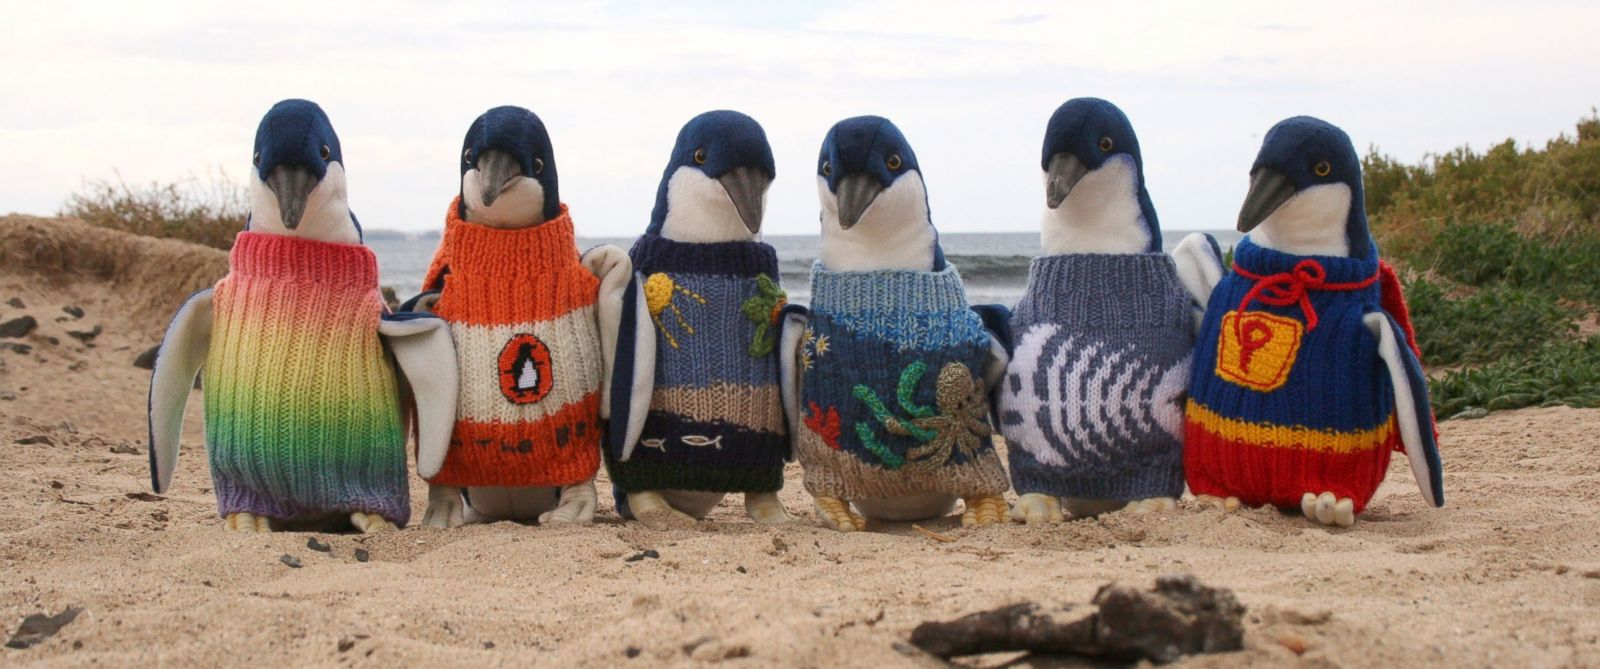 PHOTO: The winning sweaters of a knitting competition put on by the Penguin Foundation Knits for Nature program are displayed on stuffed toy penguins in this March 2014 file photo.